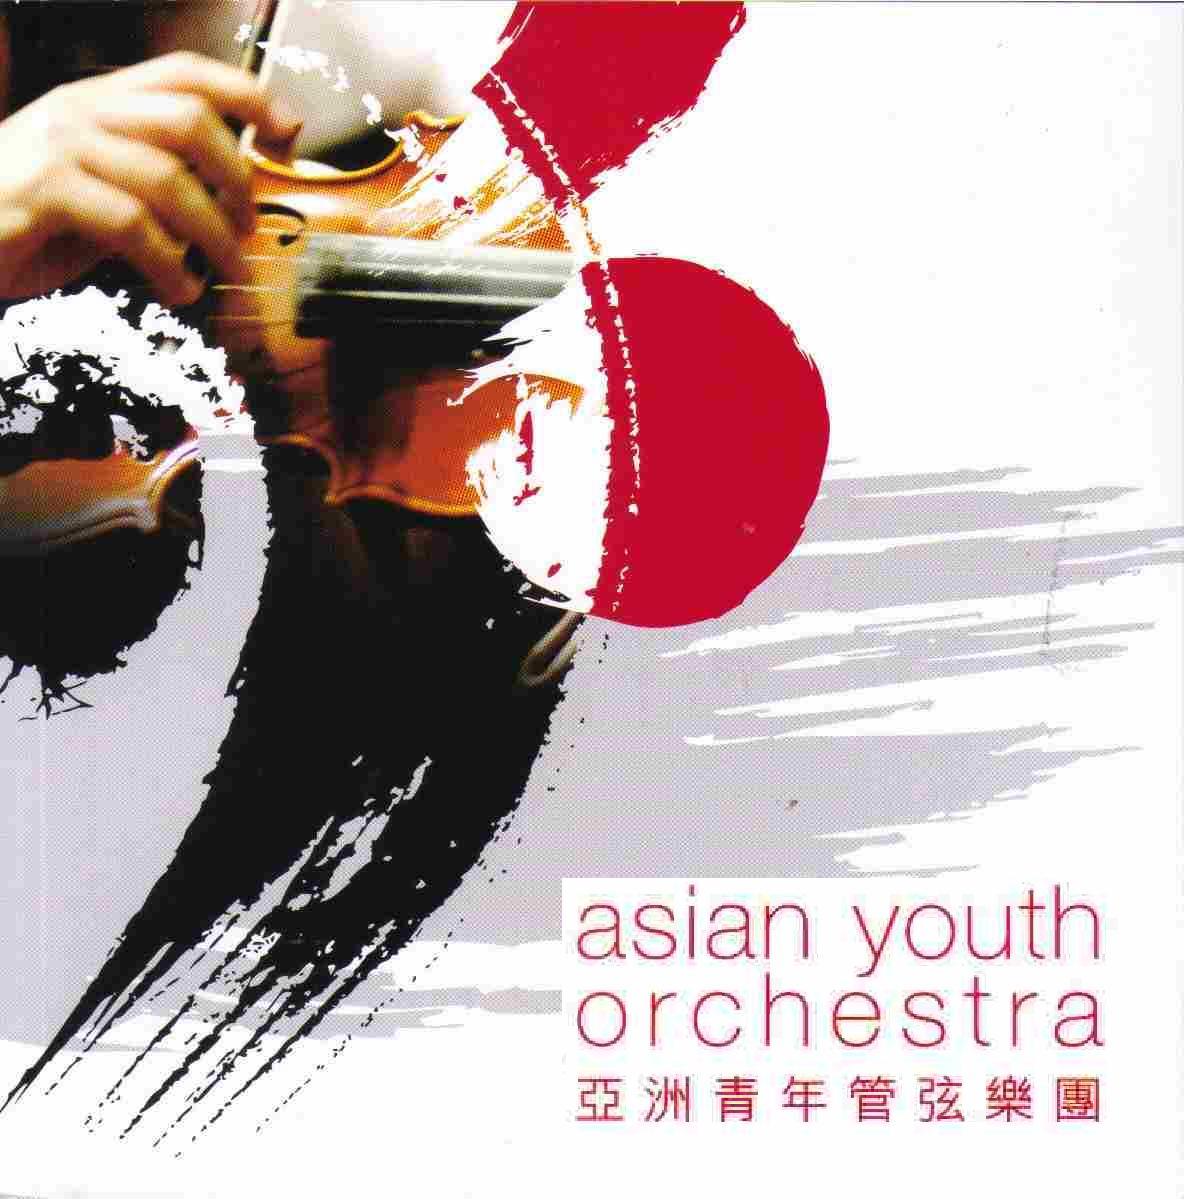 Congratulate, seems asian orchestra youth